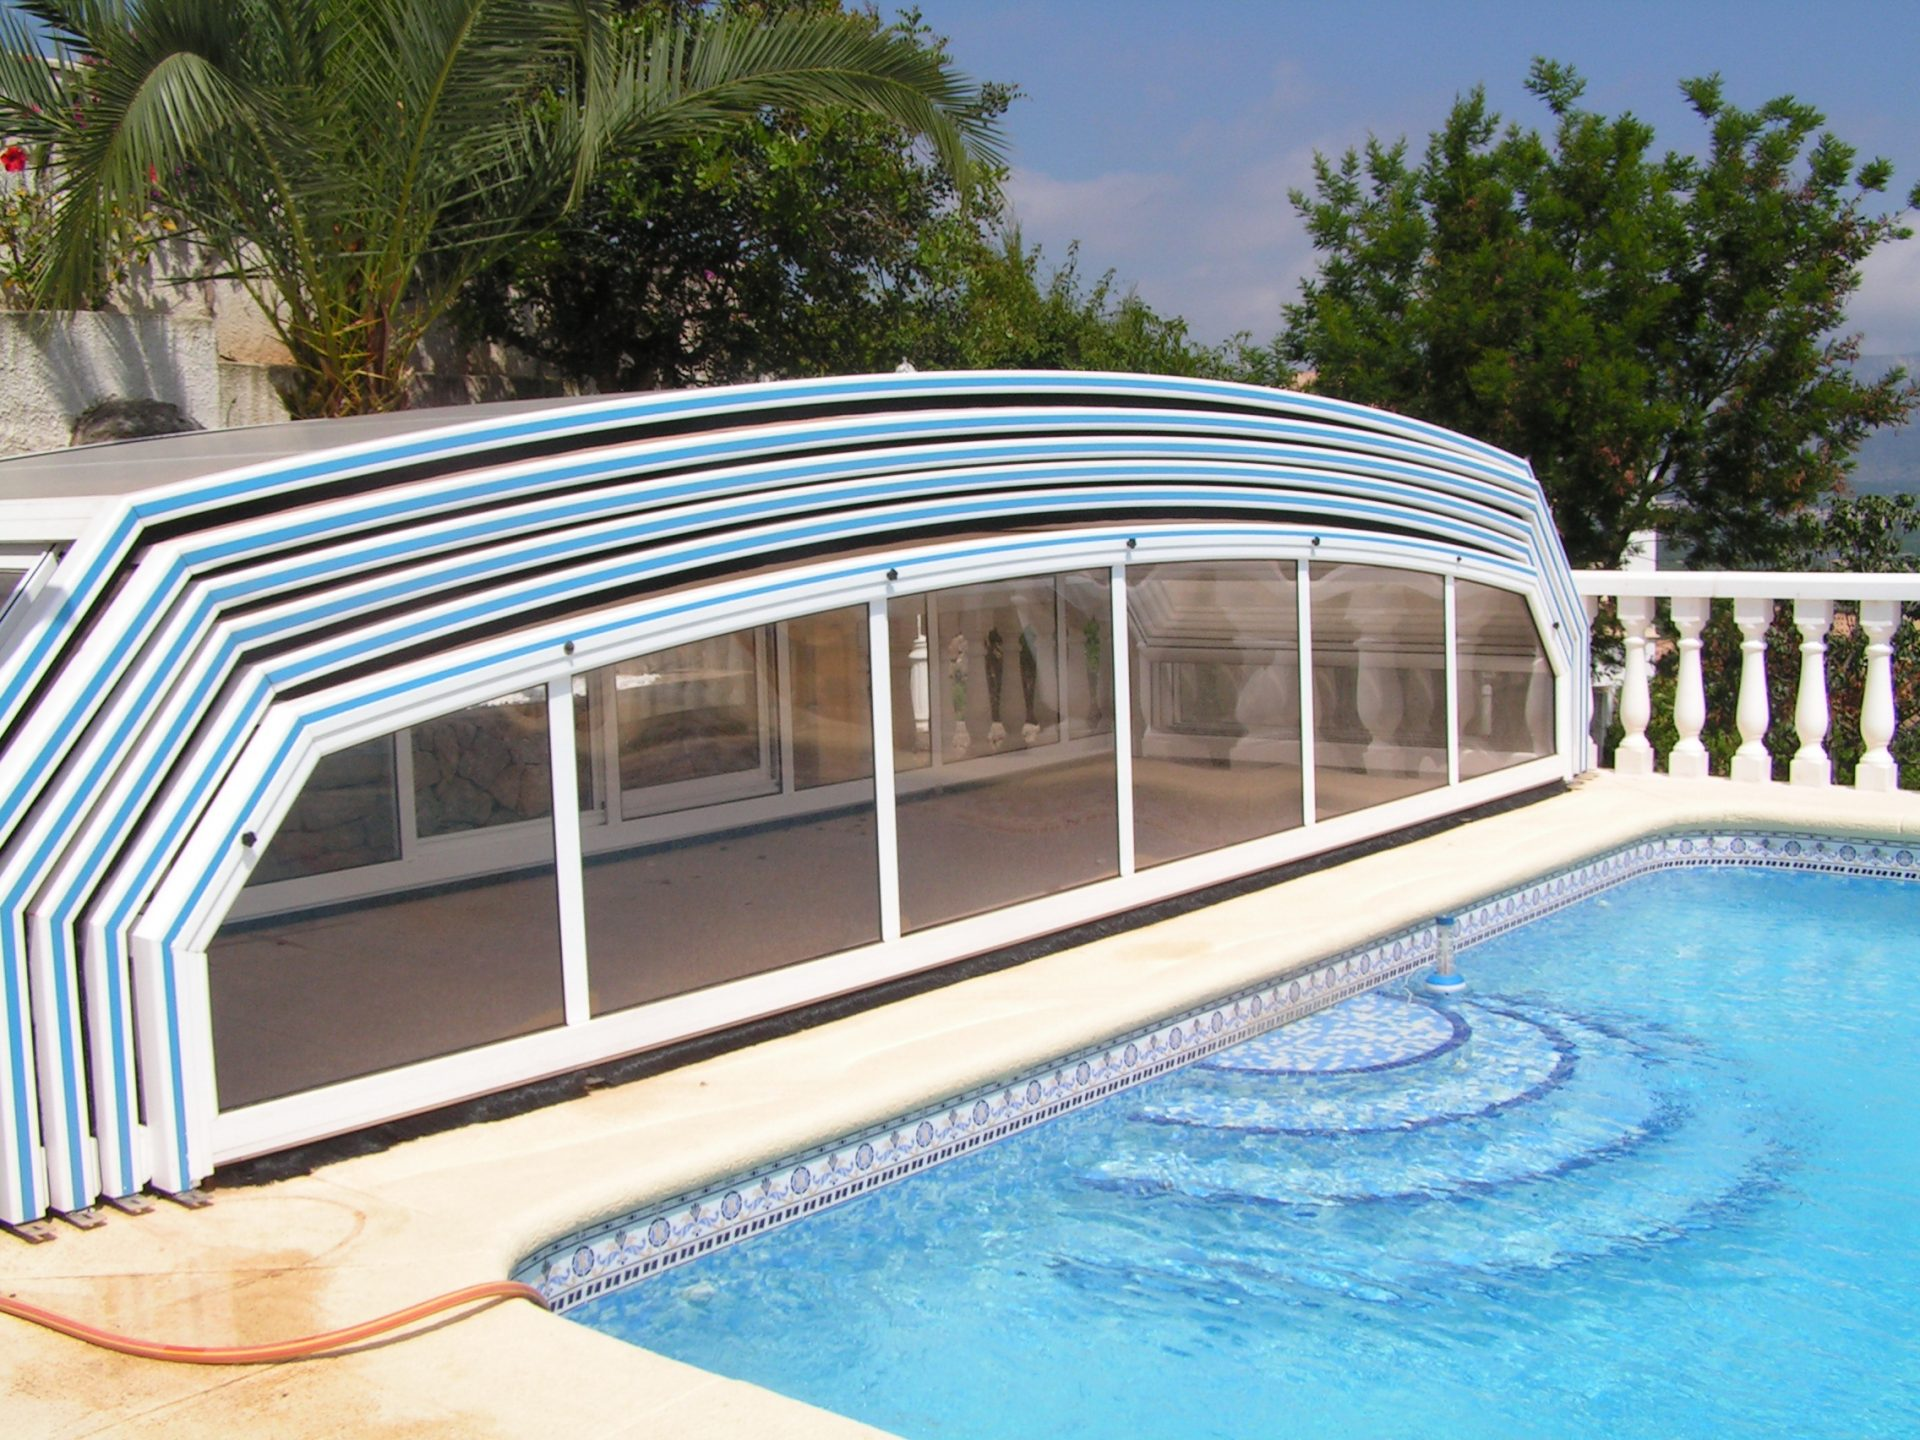 Abri piscine paris t lescopique sur roulette for Abri piscine kardinal